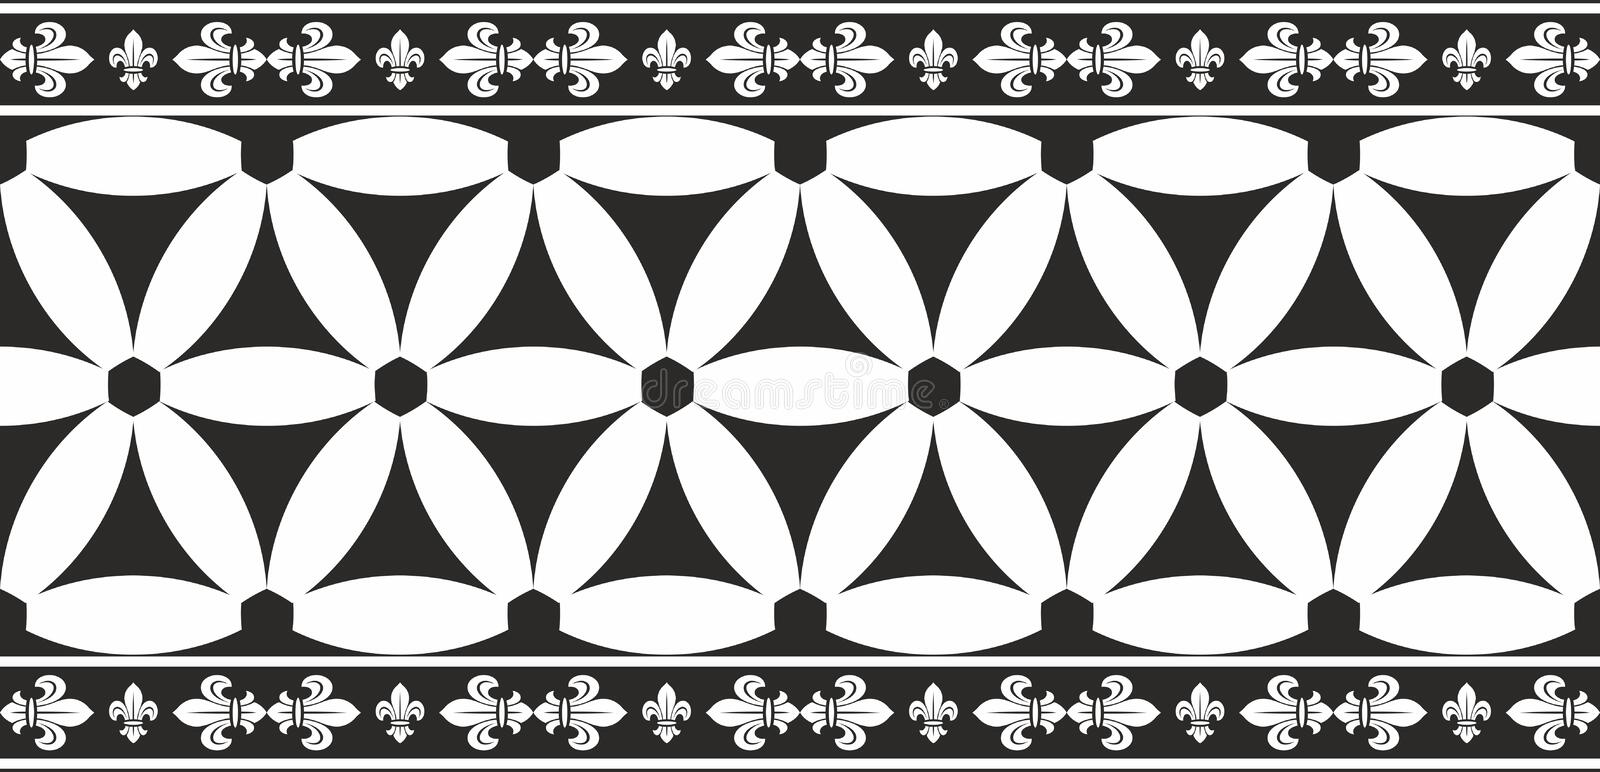 Download Seamless Black-and-white Gothic Floral Border Stock Vector - Image: 24696024